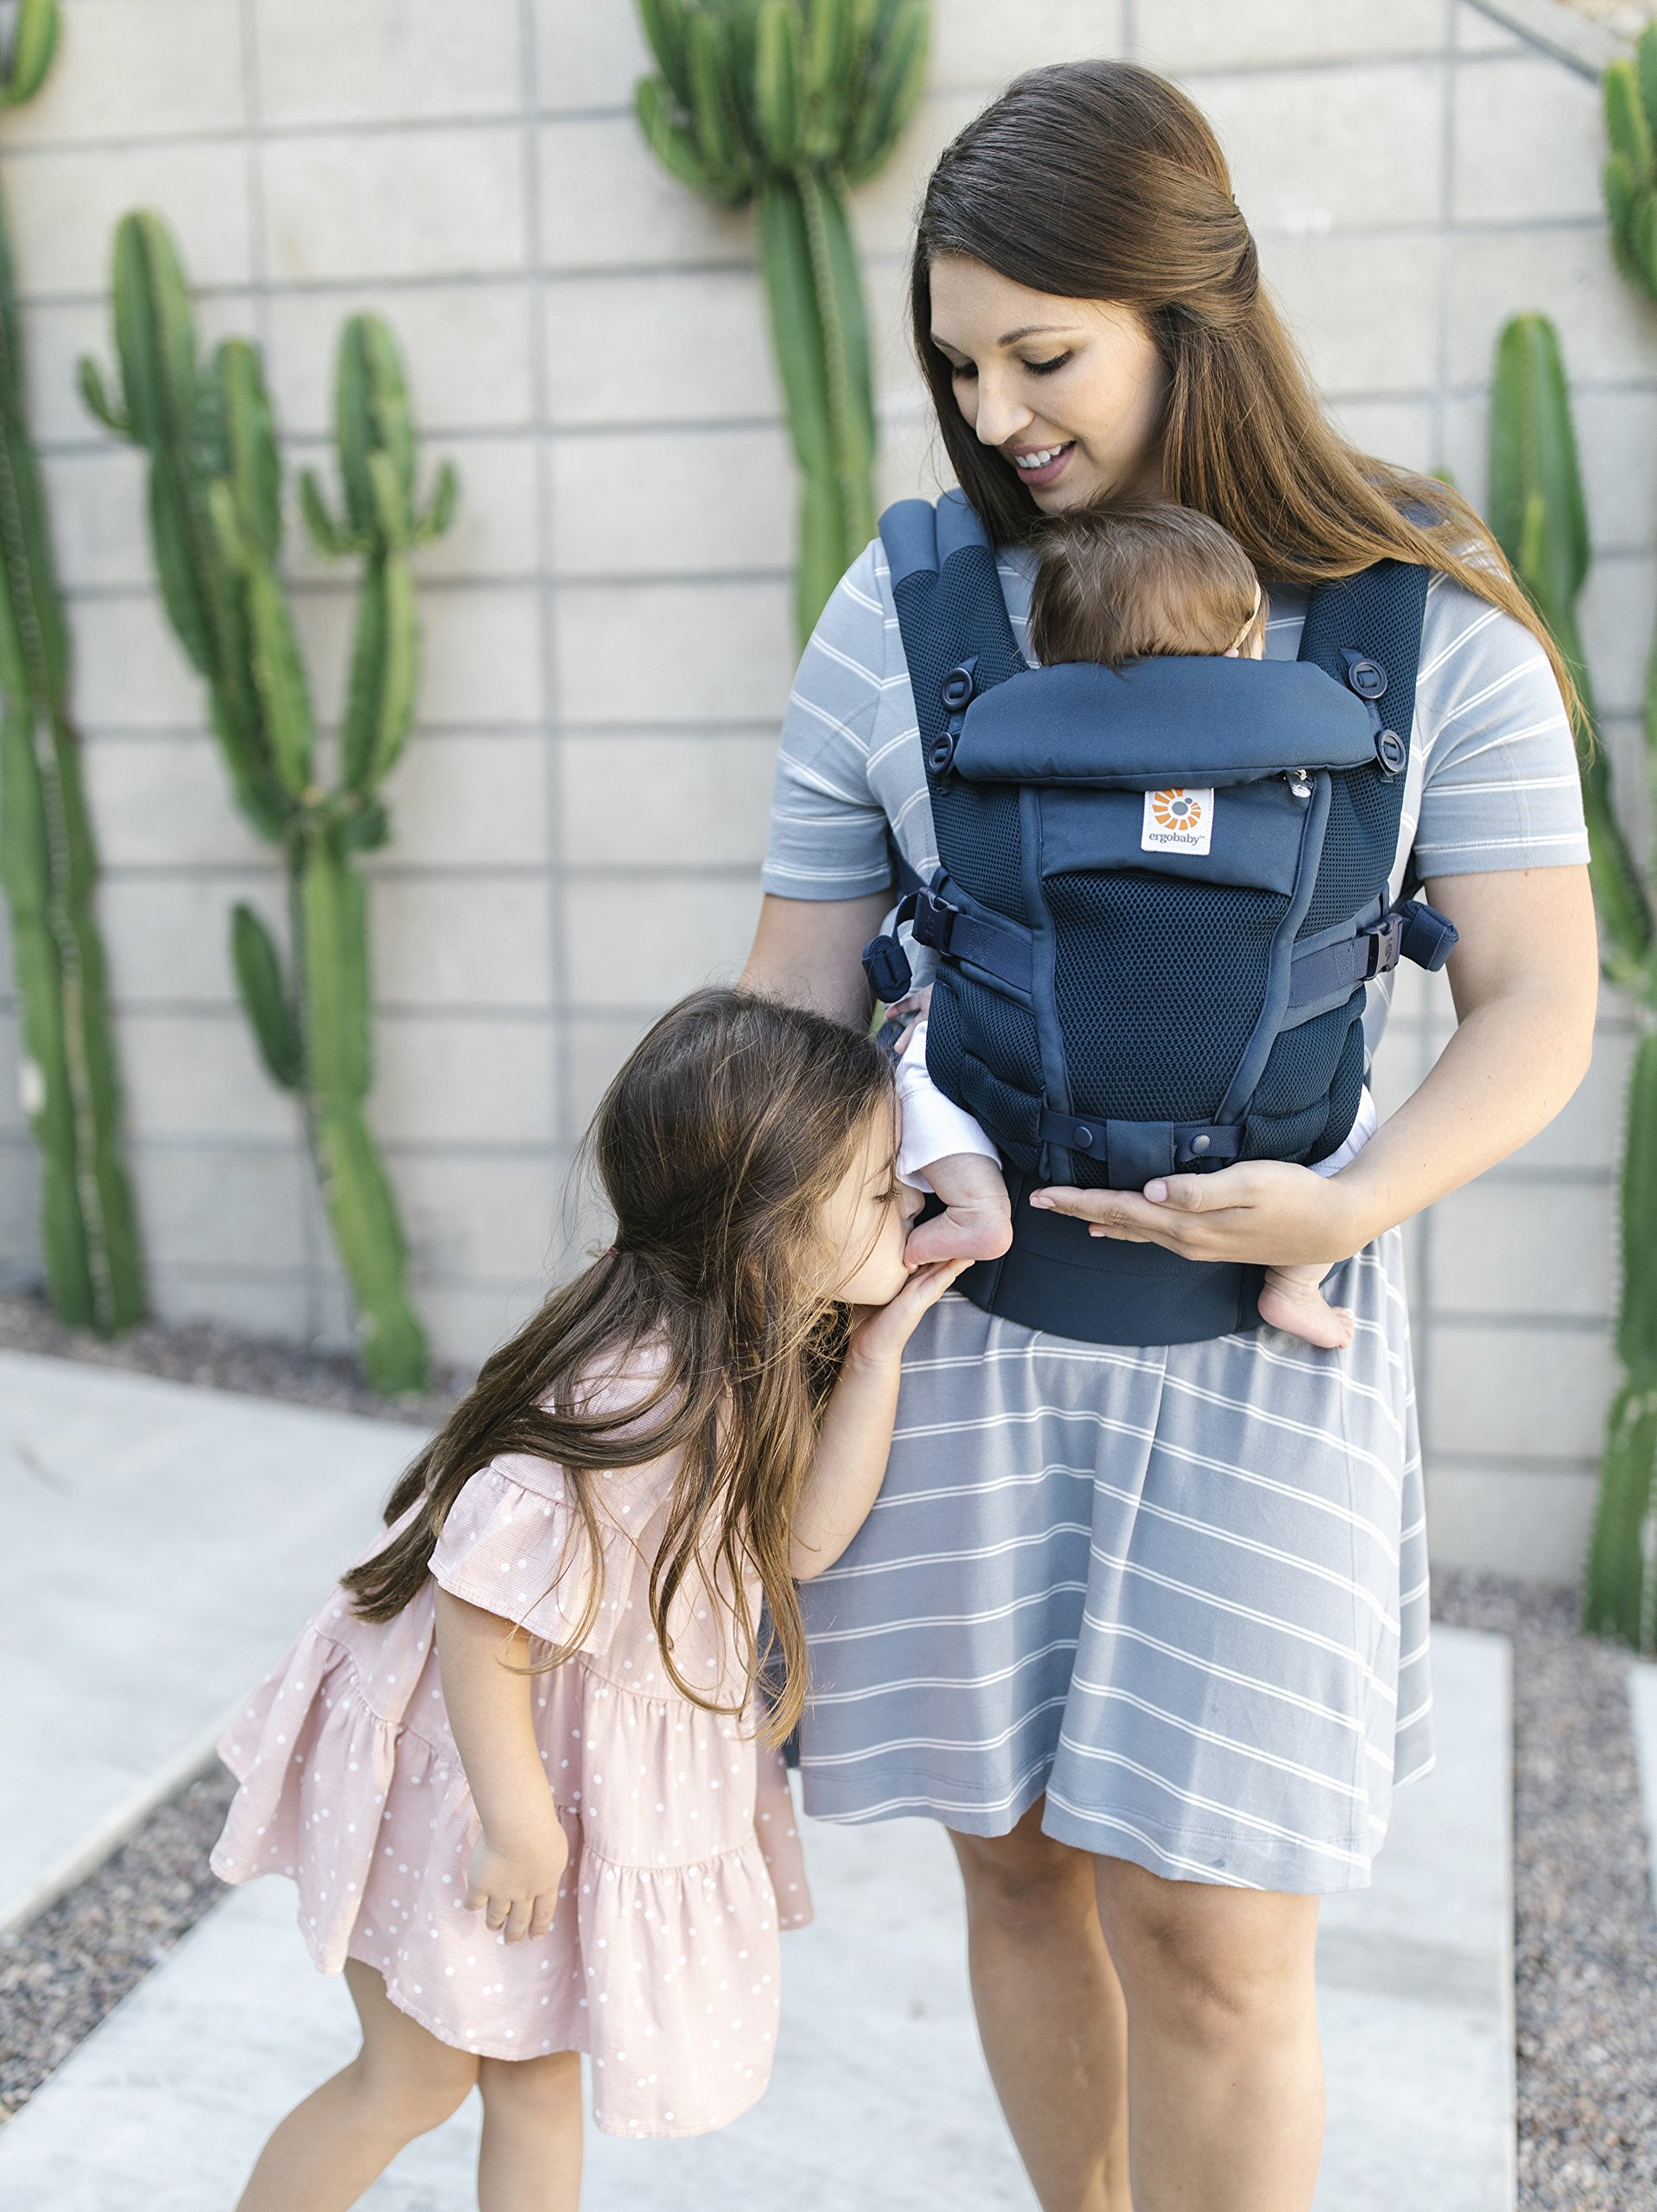 Ergobaby Baby Carrier for Newborn to Toddler up to 20kg, Adapt 3-Position Cool Air Mesh, Deep Blue Ergobaby Ergonomic bucket seat gradually adjusts to a growing baby from newborn to toddler (3.2 -20kg) No infant insert required 3 ergonomic carry positions: front-inward, hip and back 2